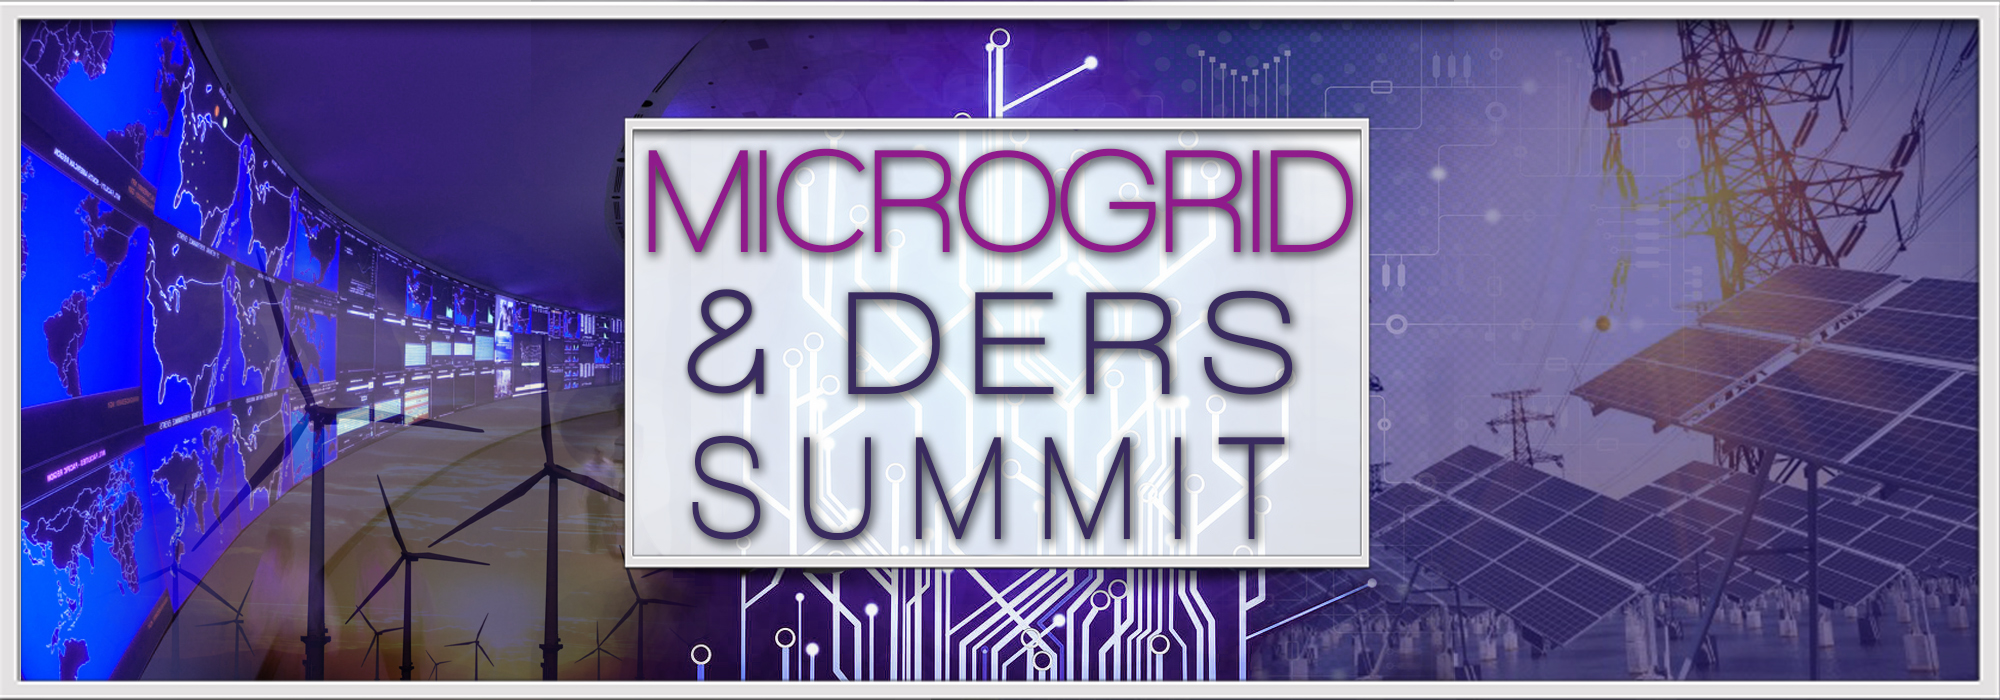 Microgrid Banner 3rd